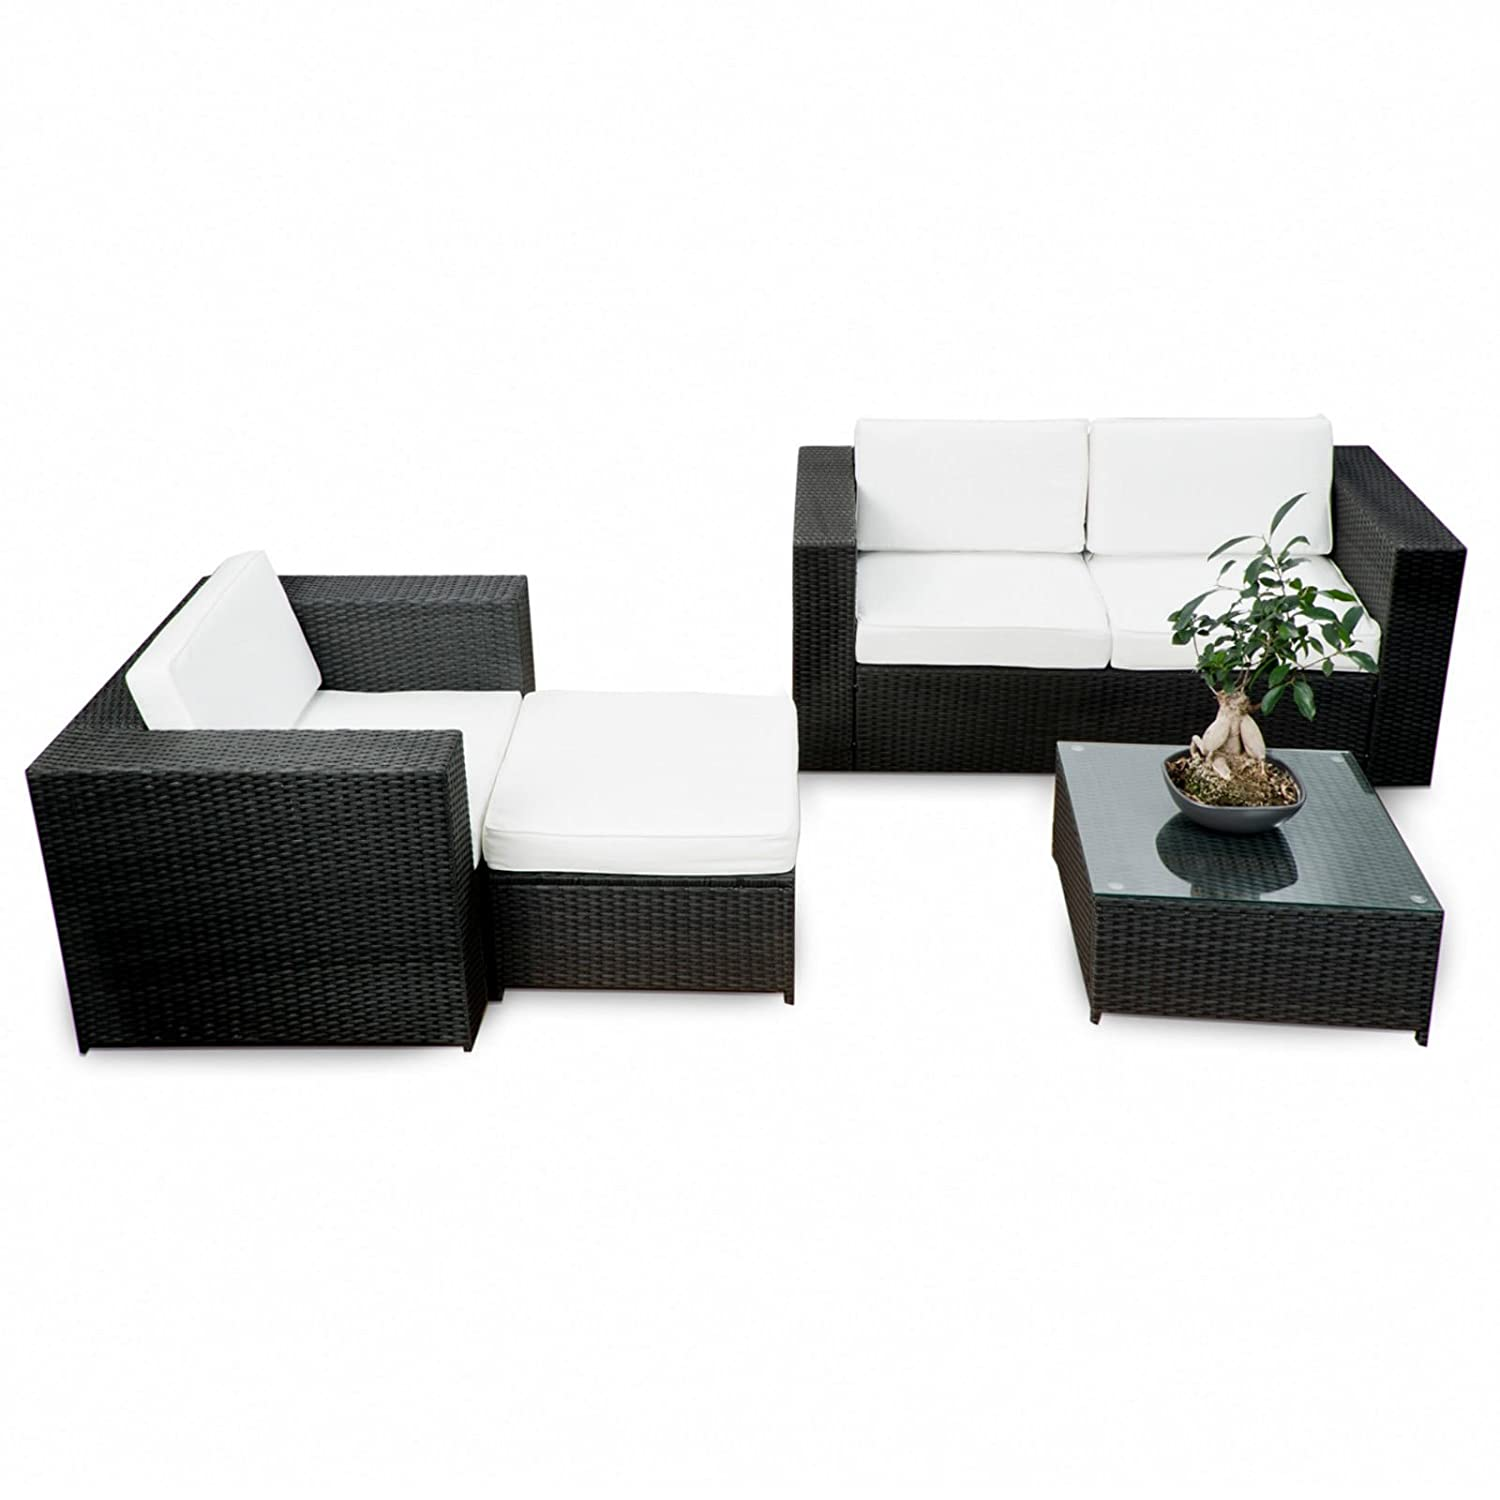 ssitg polyrattan gartenm bel lounge m bel sitzgruppe. Black Bedroom Furniture Sets. Home Design Ideas